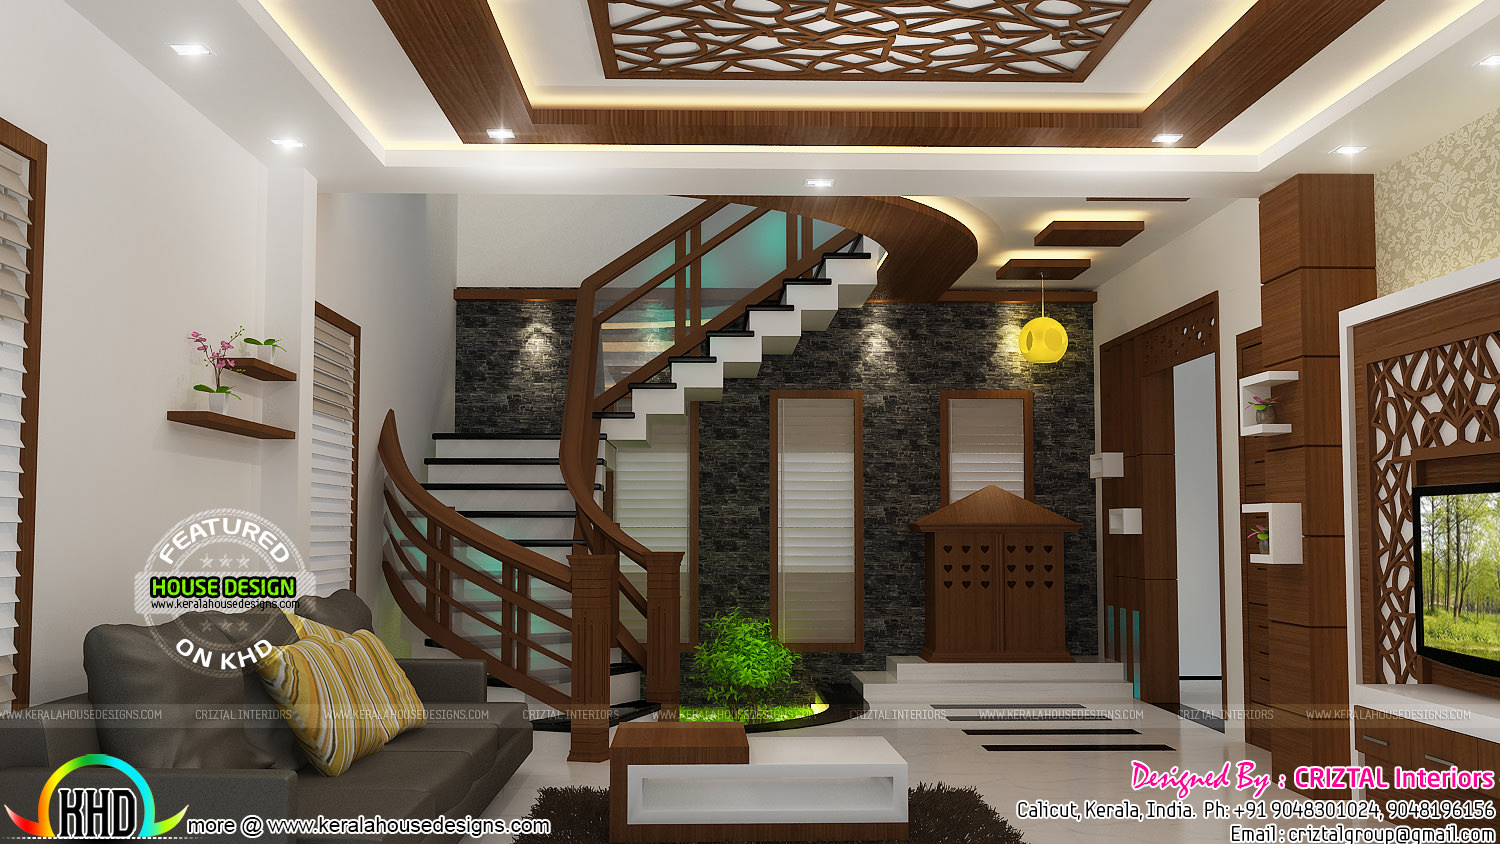 Bedroom dining hall and living interior kerala home for Home interior design hall